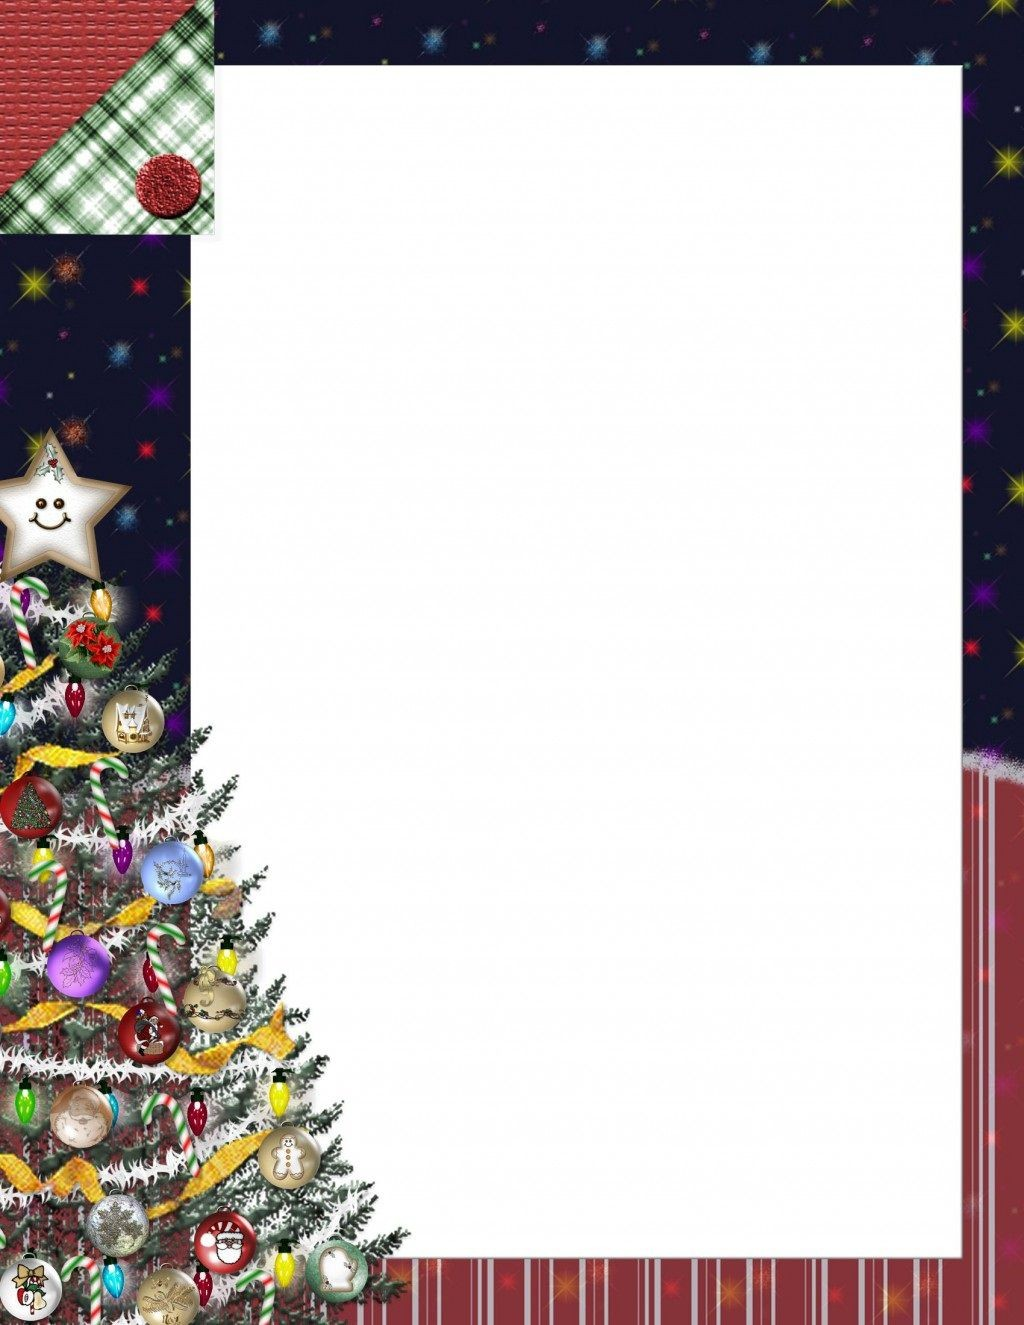 003 Unforgettable Free Christian Christma Stationery Template For Word Image Large